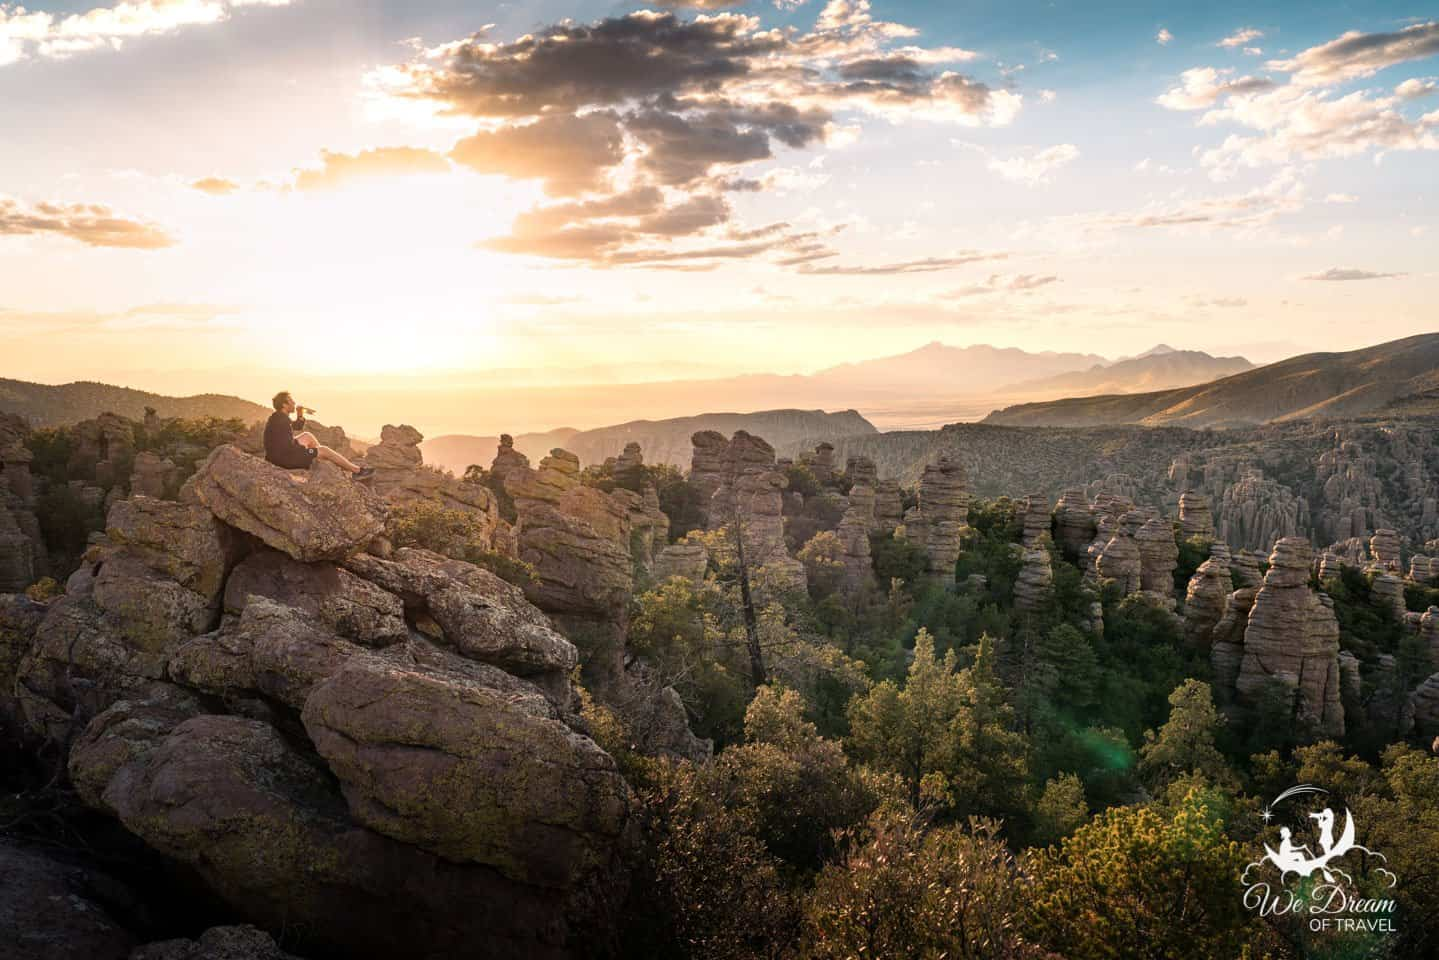 Heart of Rocks in one of my favorite sunset destinations in Chiricahua National Monument.